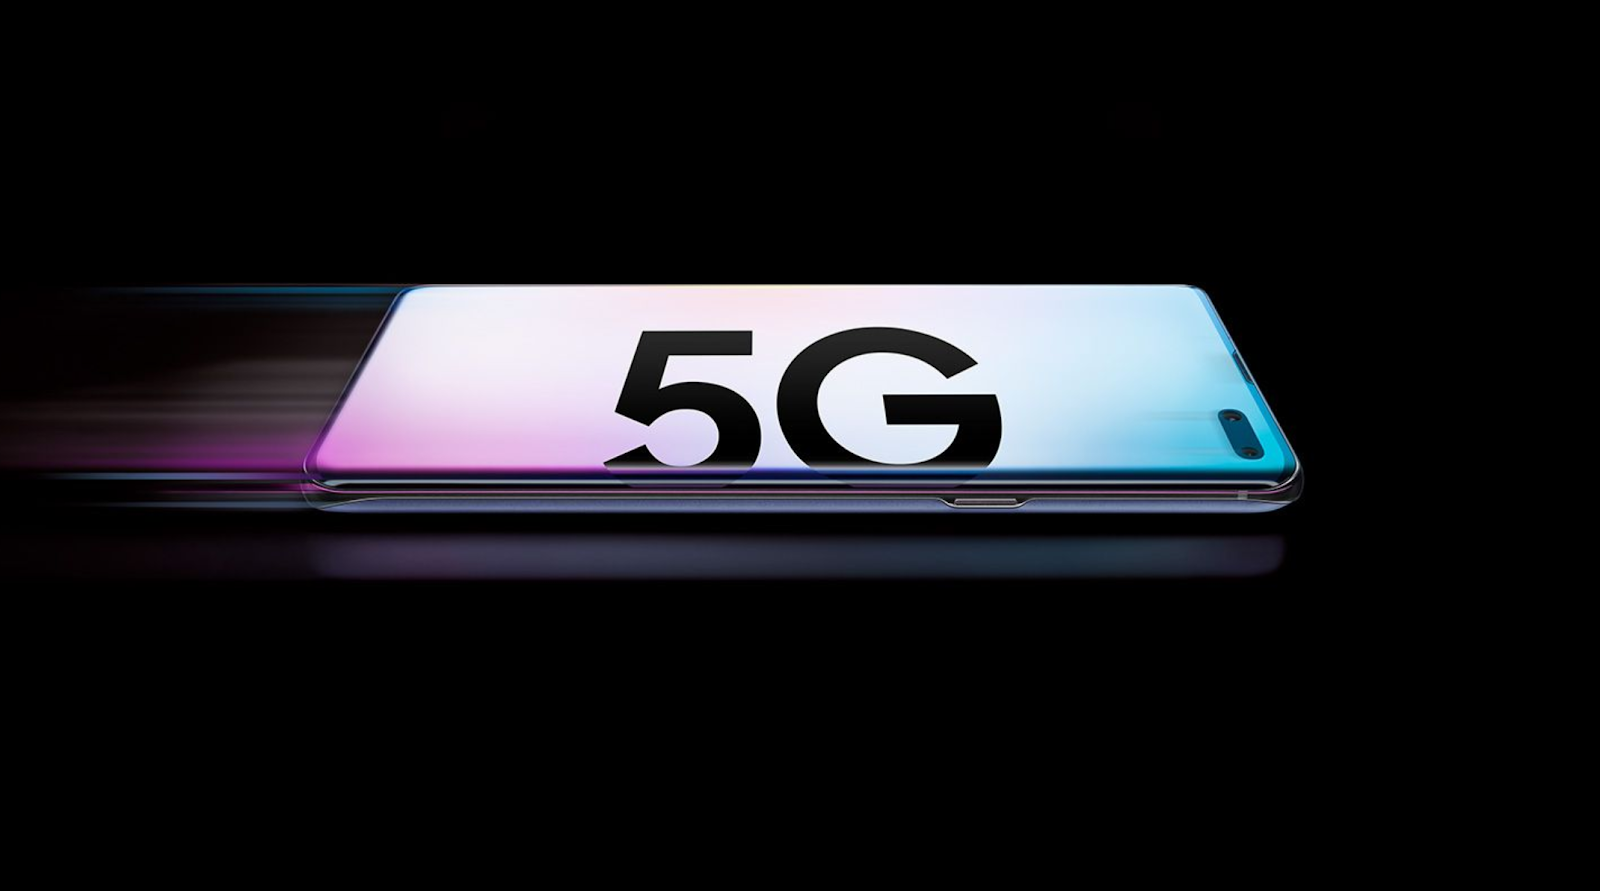 affordable 5g phones gohere